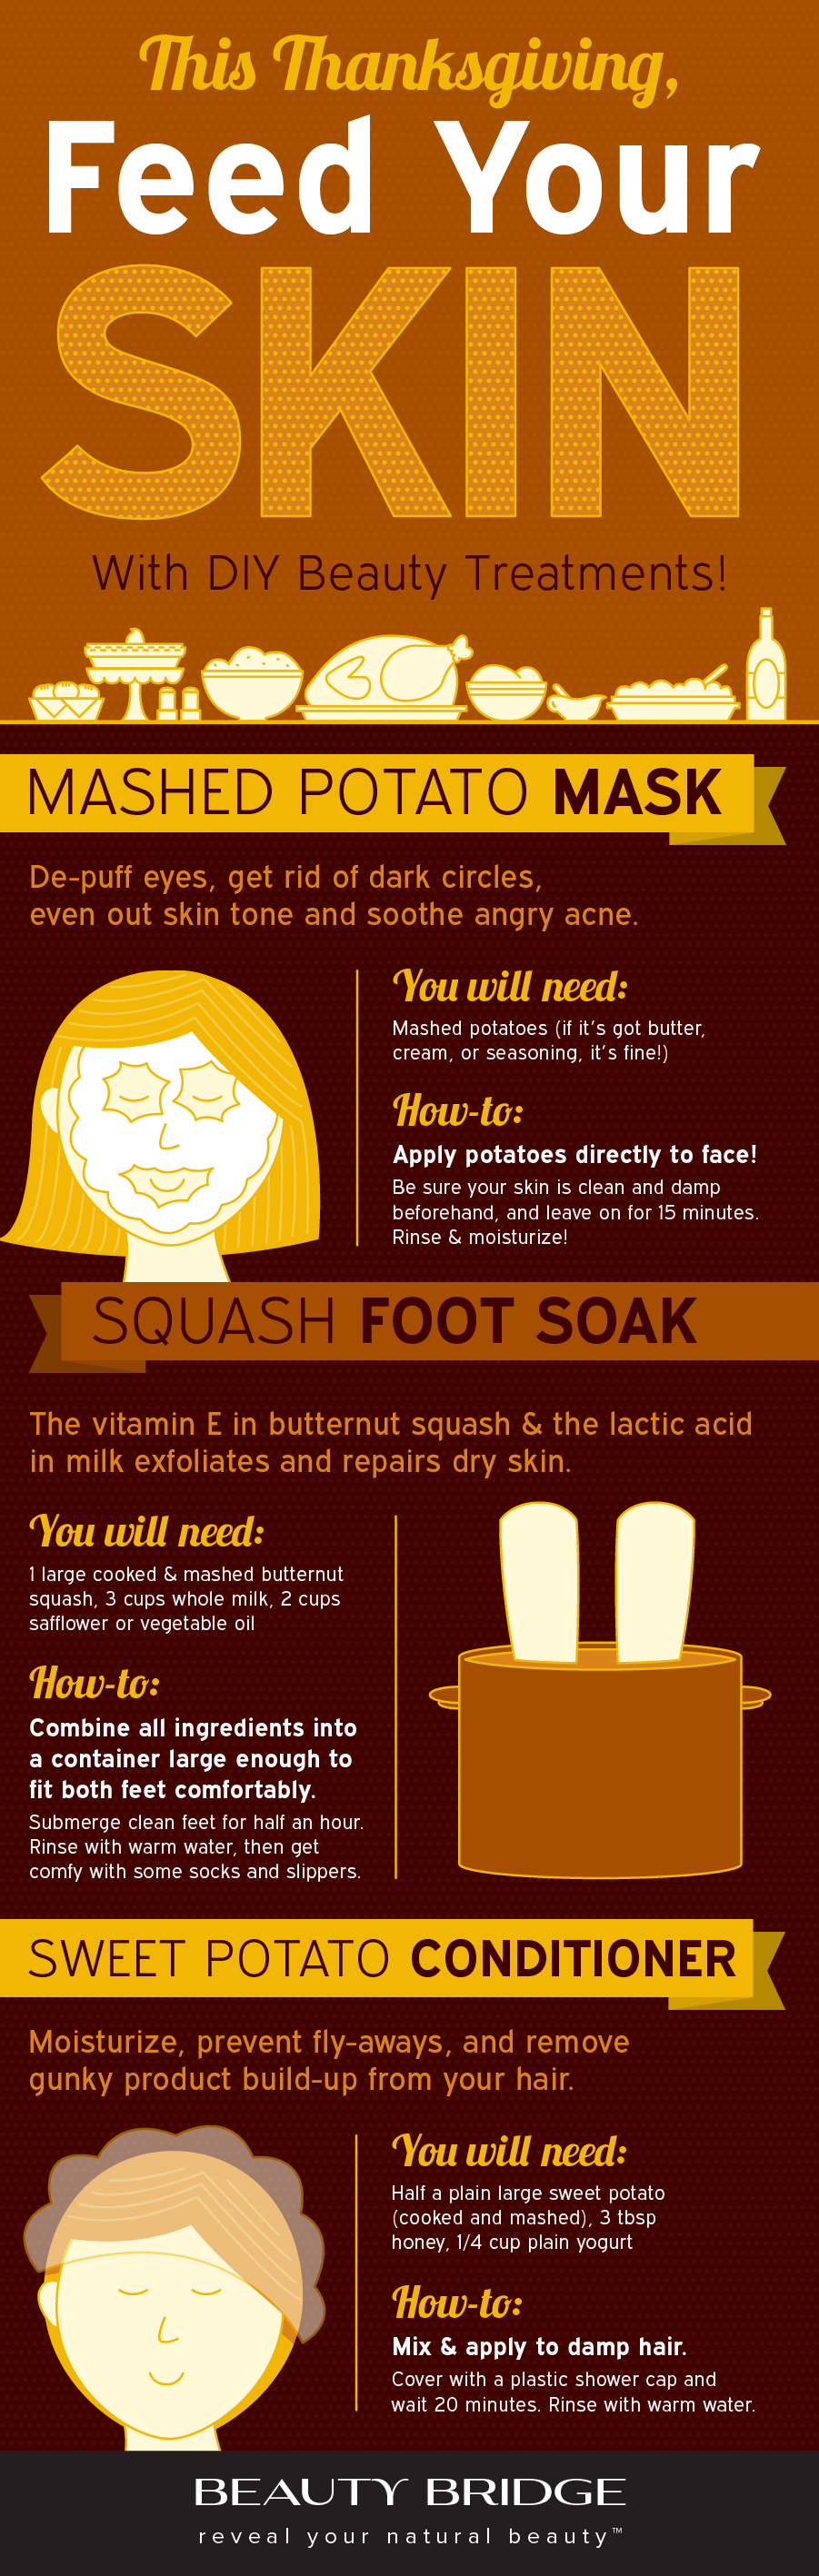 This Thanksgiving, Feed Your Skin With DIY Beauty Treatments!